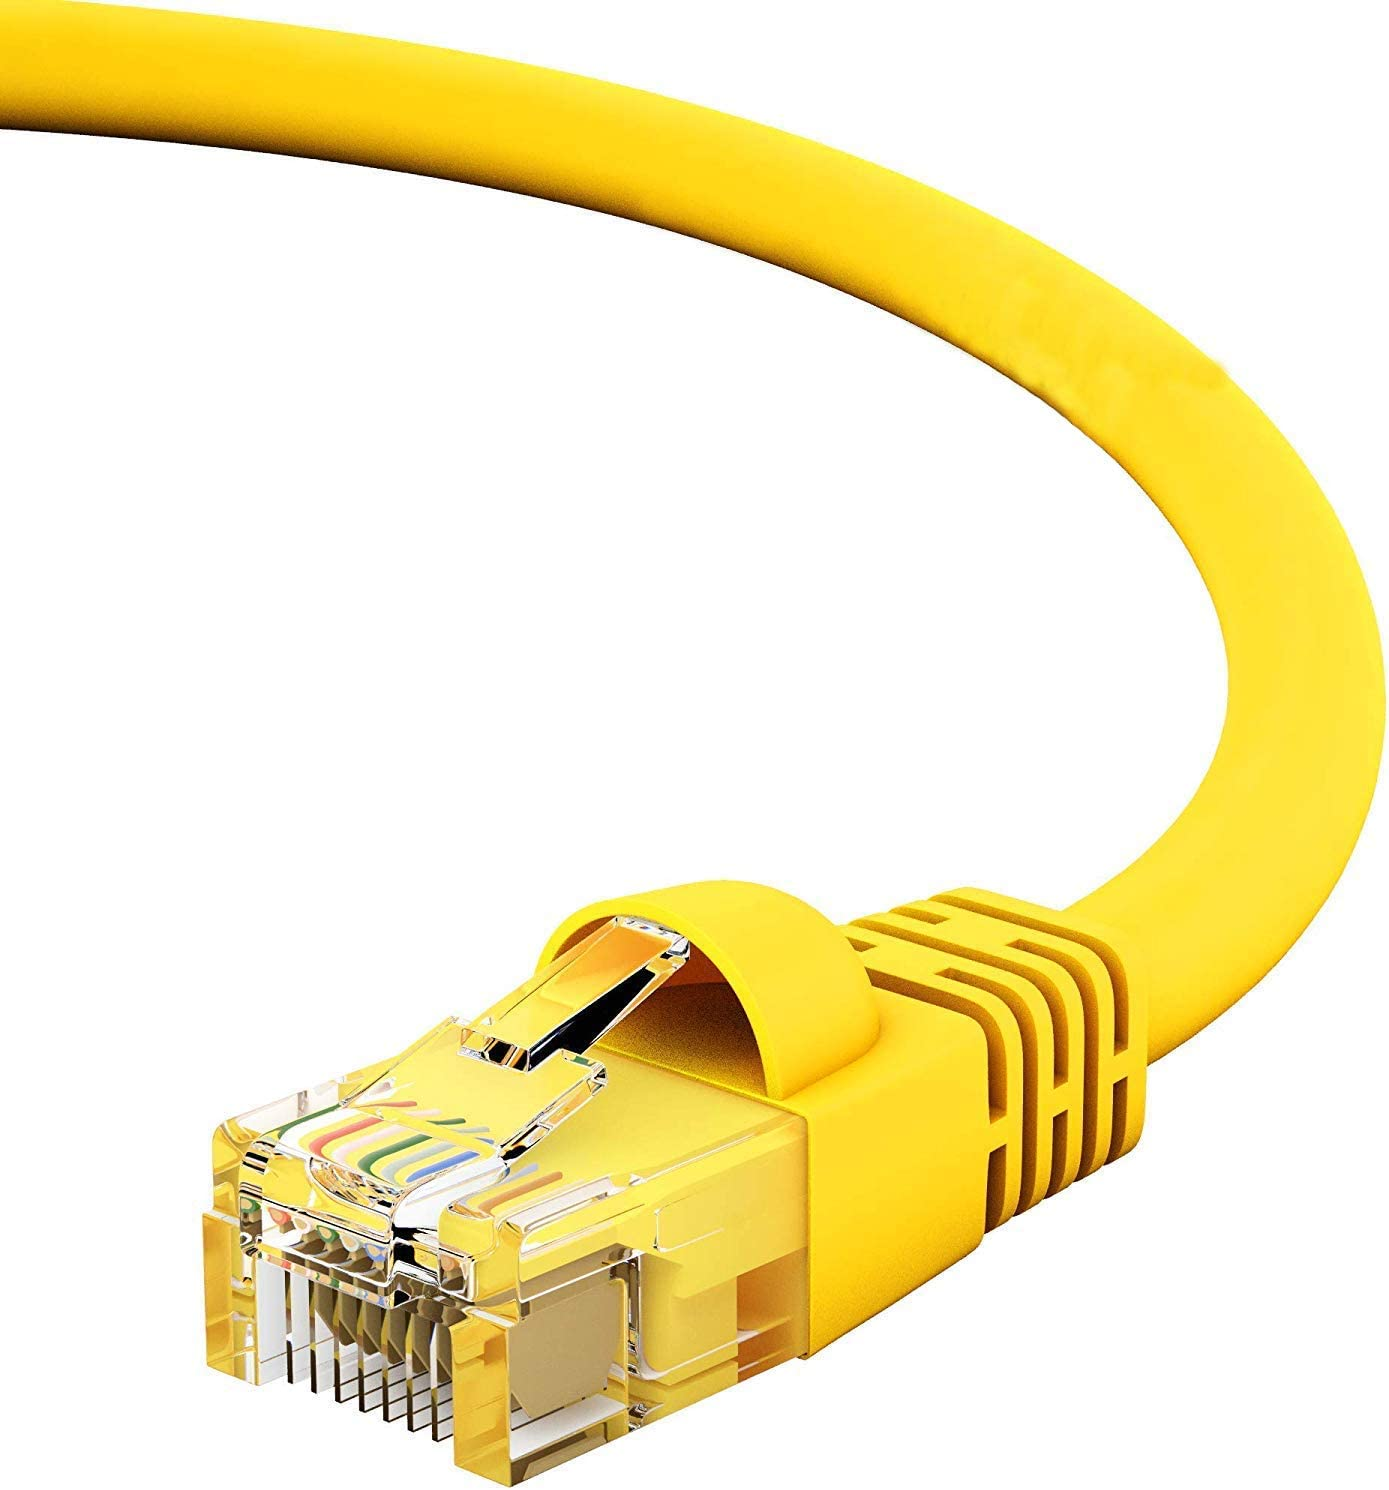 24AWG Network Cable with Gold Plated RJ45 Snagless//Molded//Booted Connector CABLECHOICE Cat5e Ethernet Cable 40 Feet - Yellow 350MHz 1Gigabit//Sec High Speed LAN Internet//Patch Cable